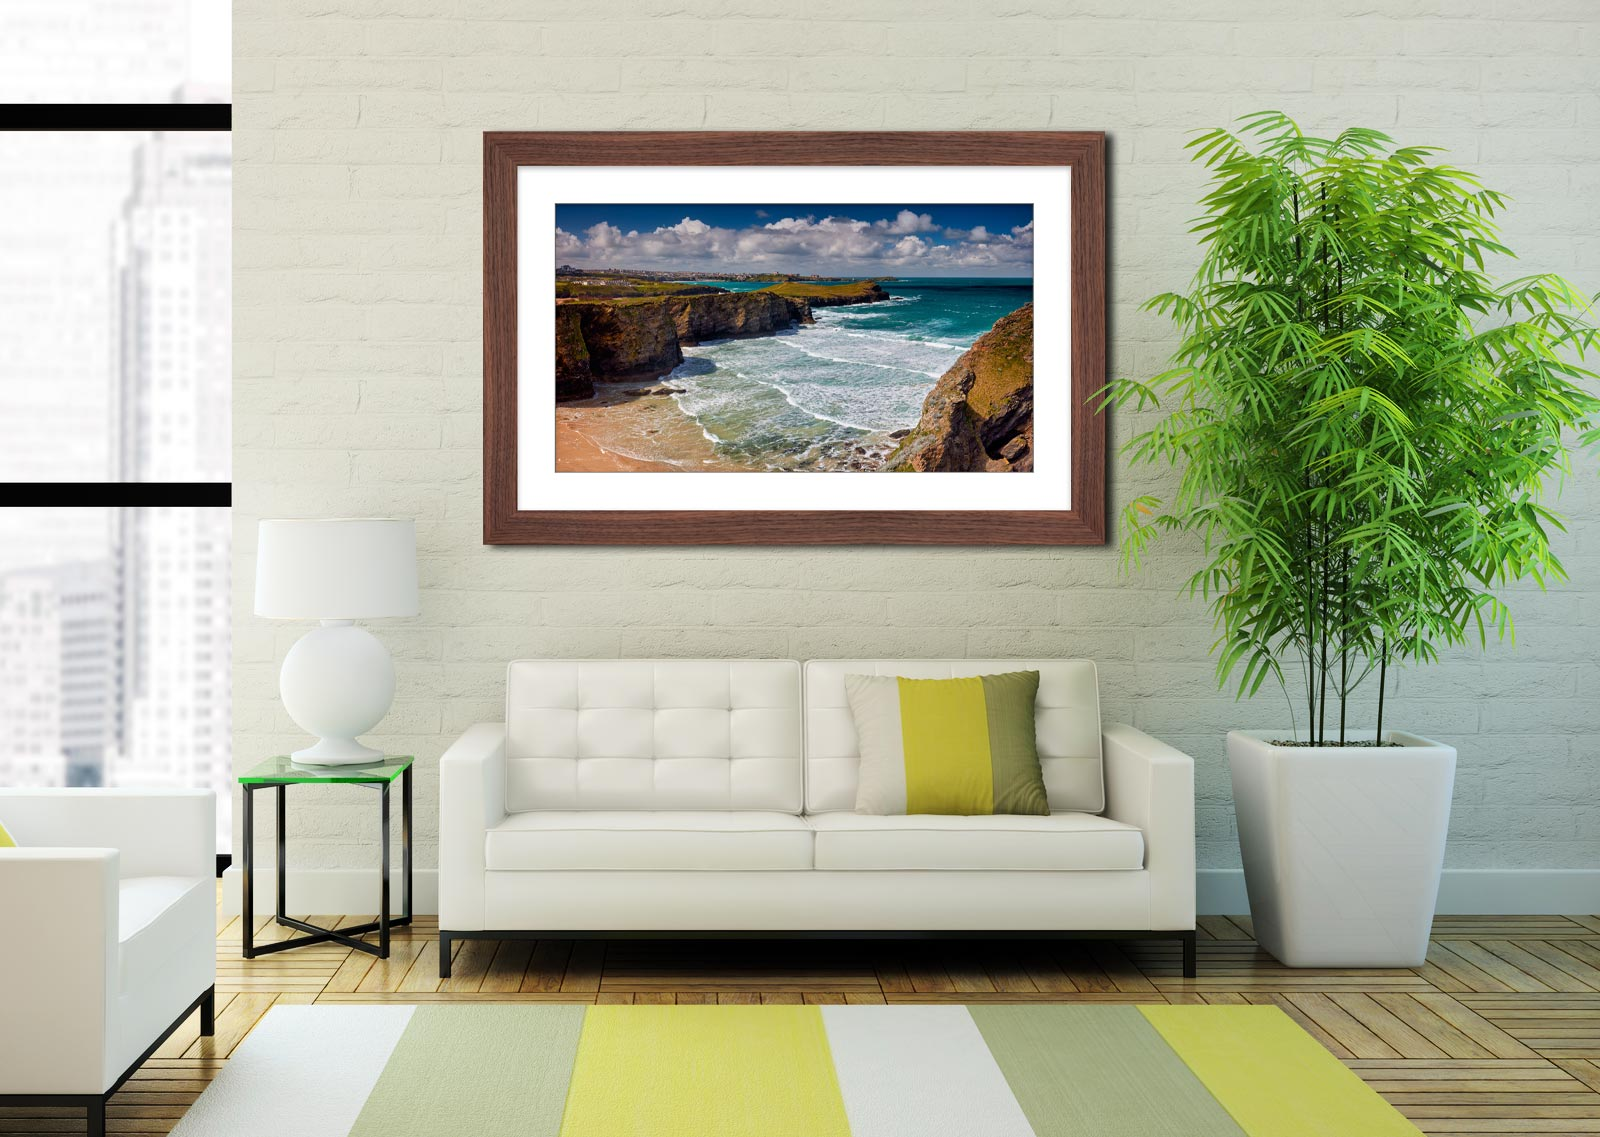 Porth Island - Framed Print with Mount on Wall